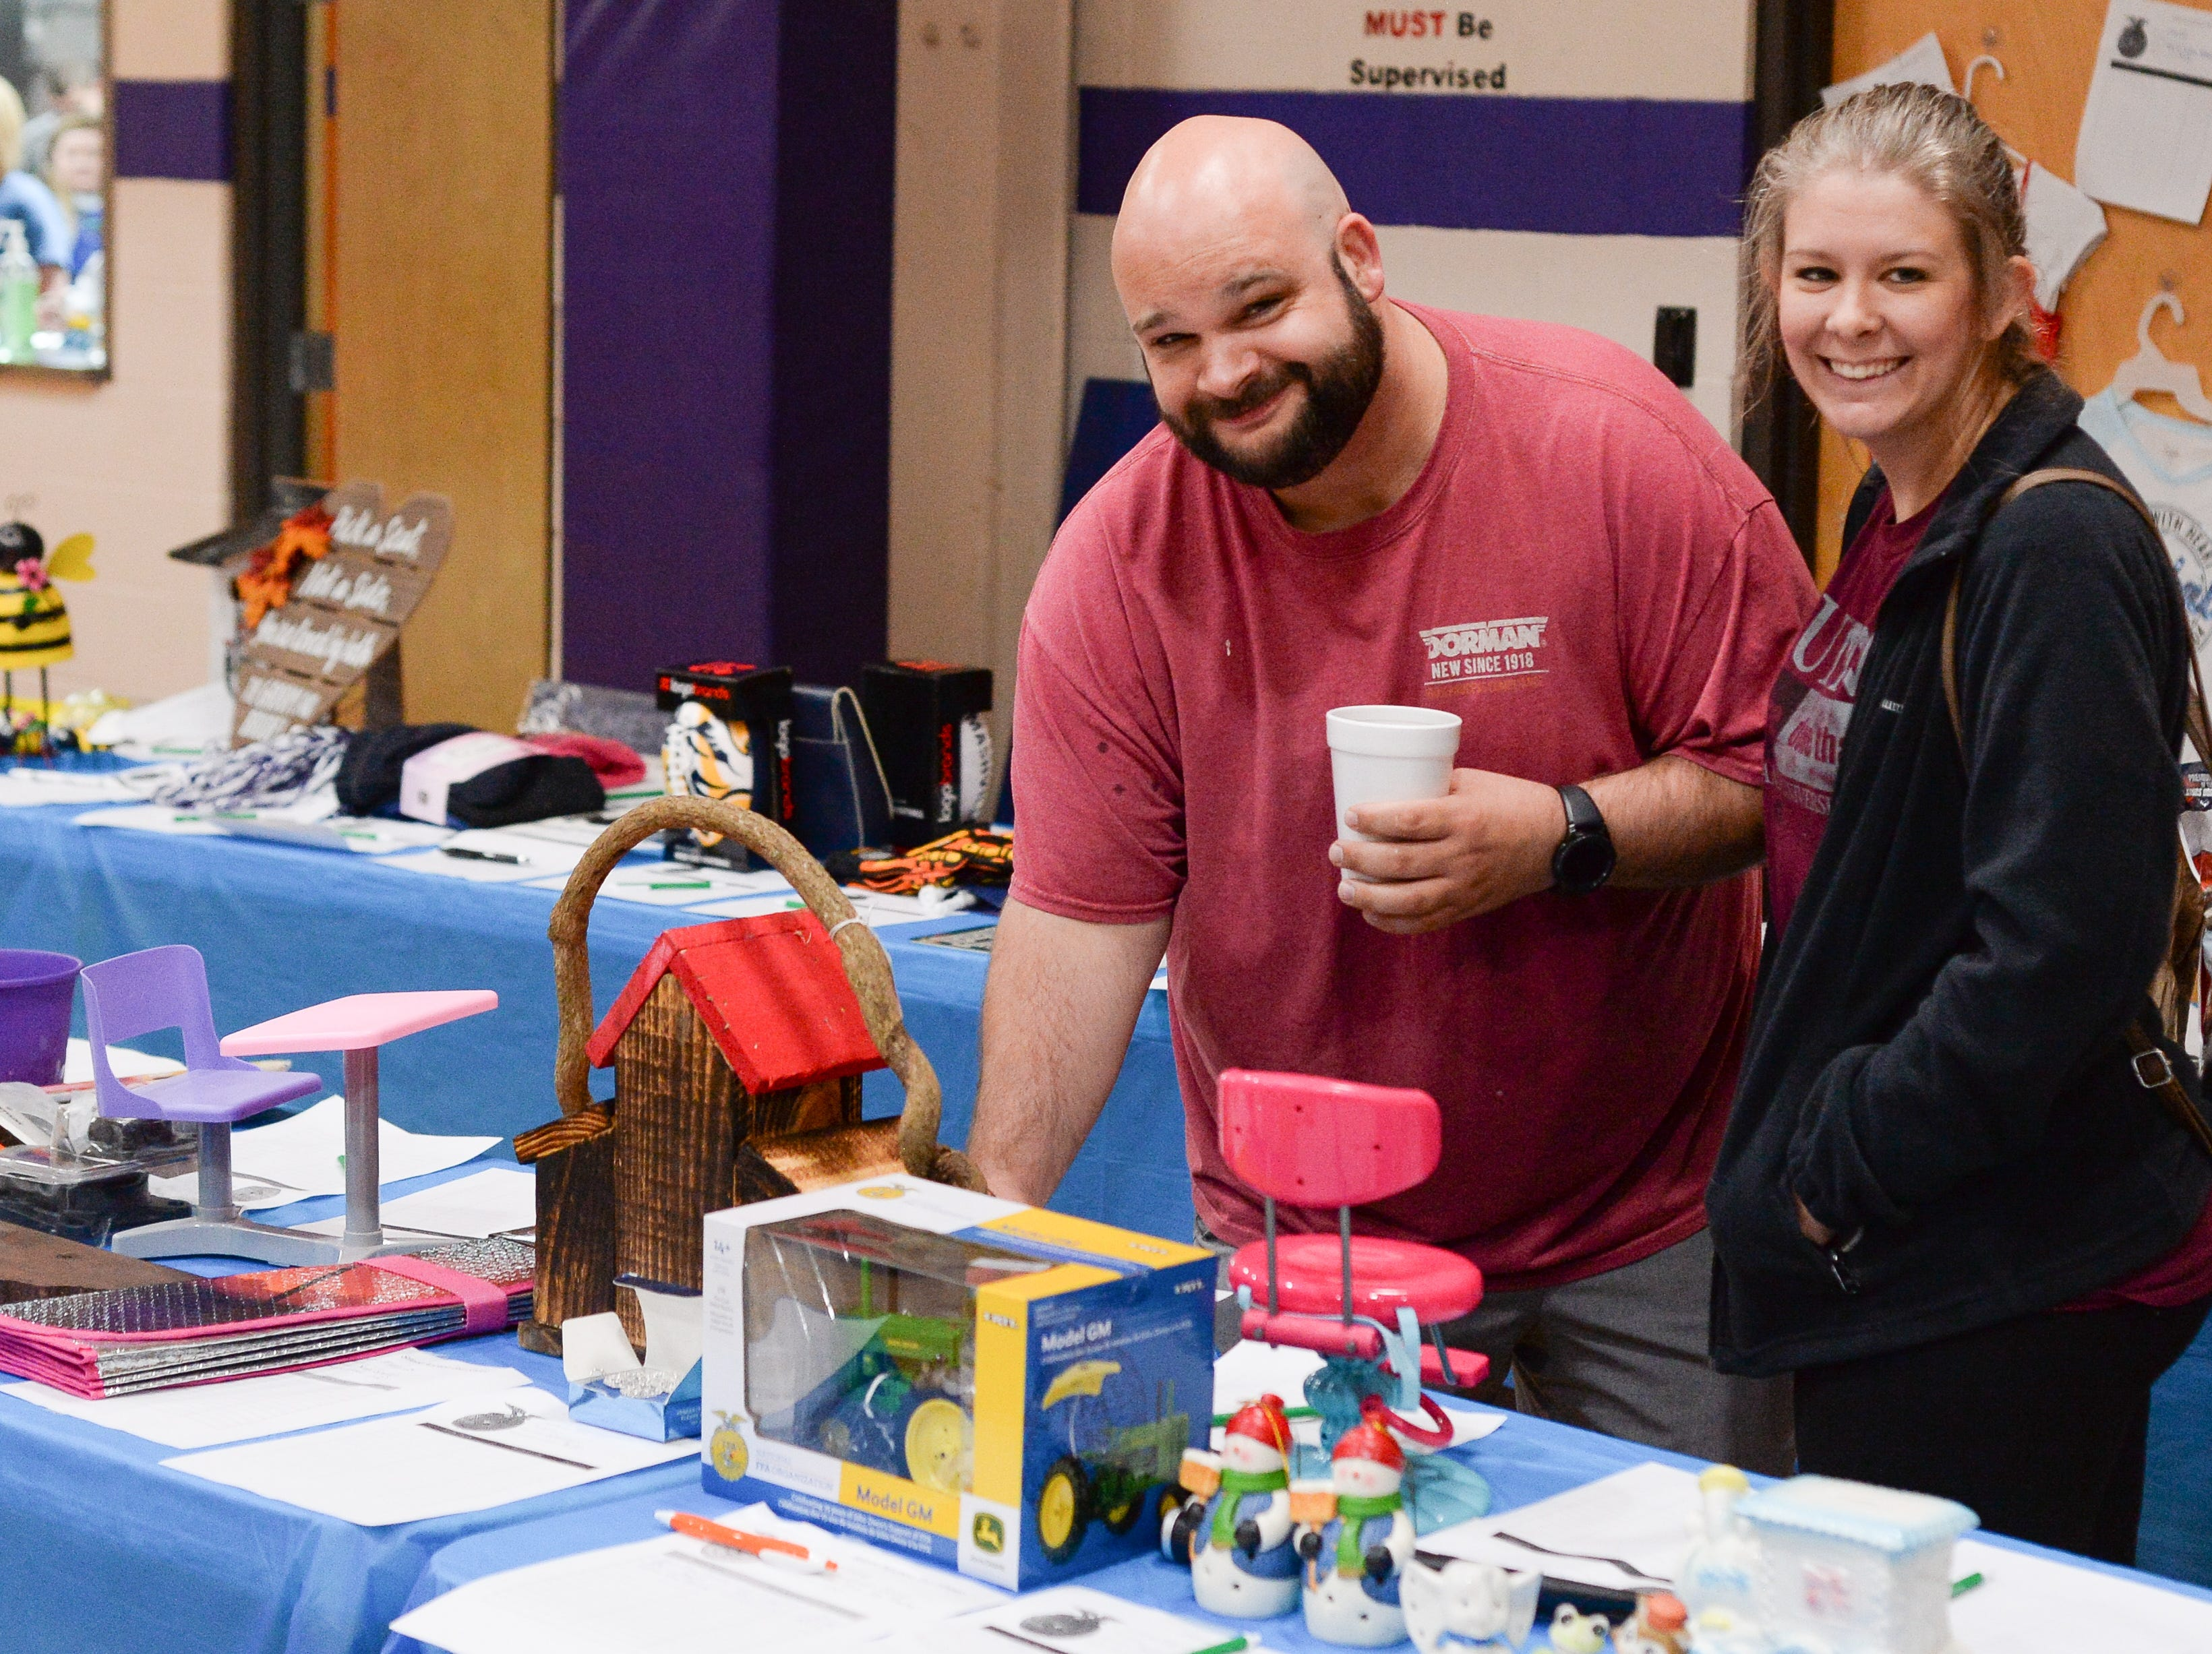 Cory Hulan and Kala Dixon participate in a silent auction during the Strawberry Festival Pancake Breakfast & Silent Auction presented by the Portland Rotary Club & Portland FFA at First Baptist Church Portland on Saturday, May 11.